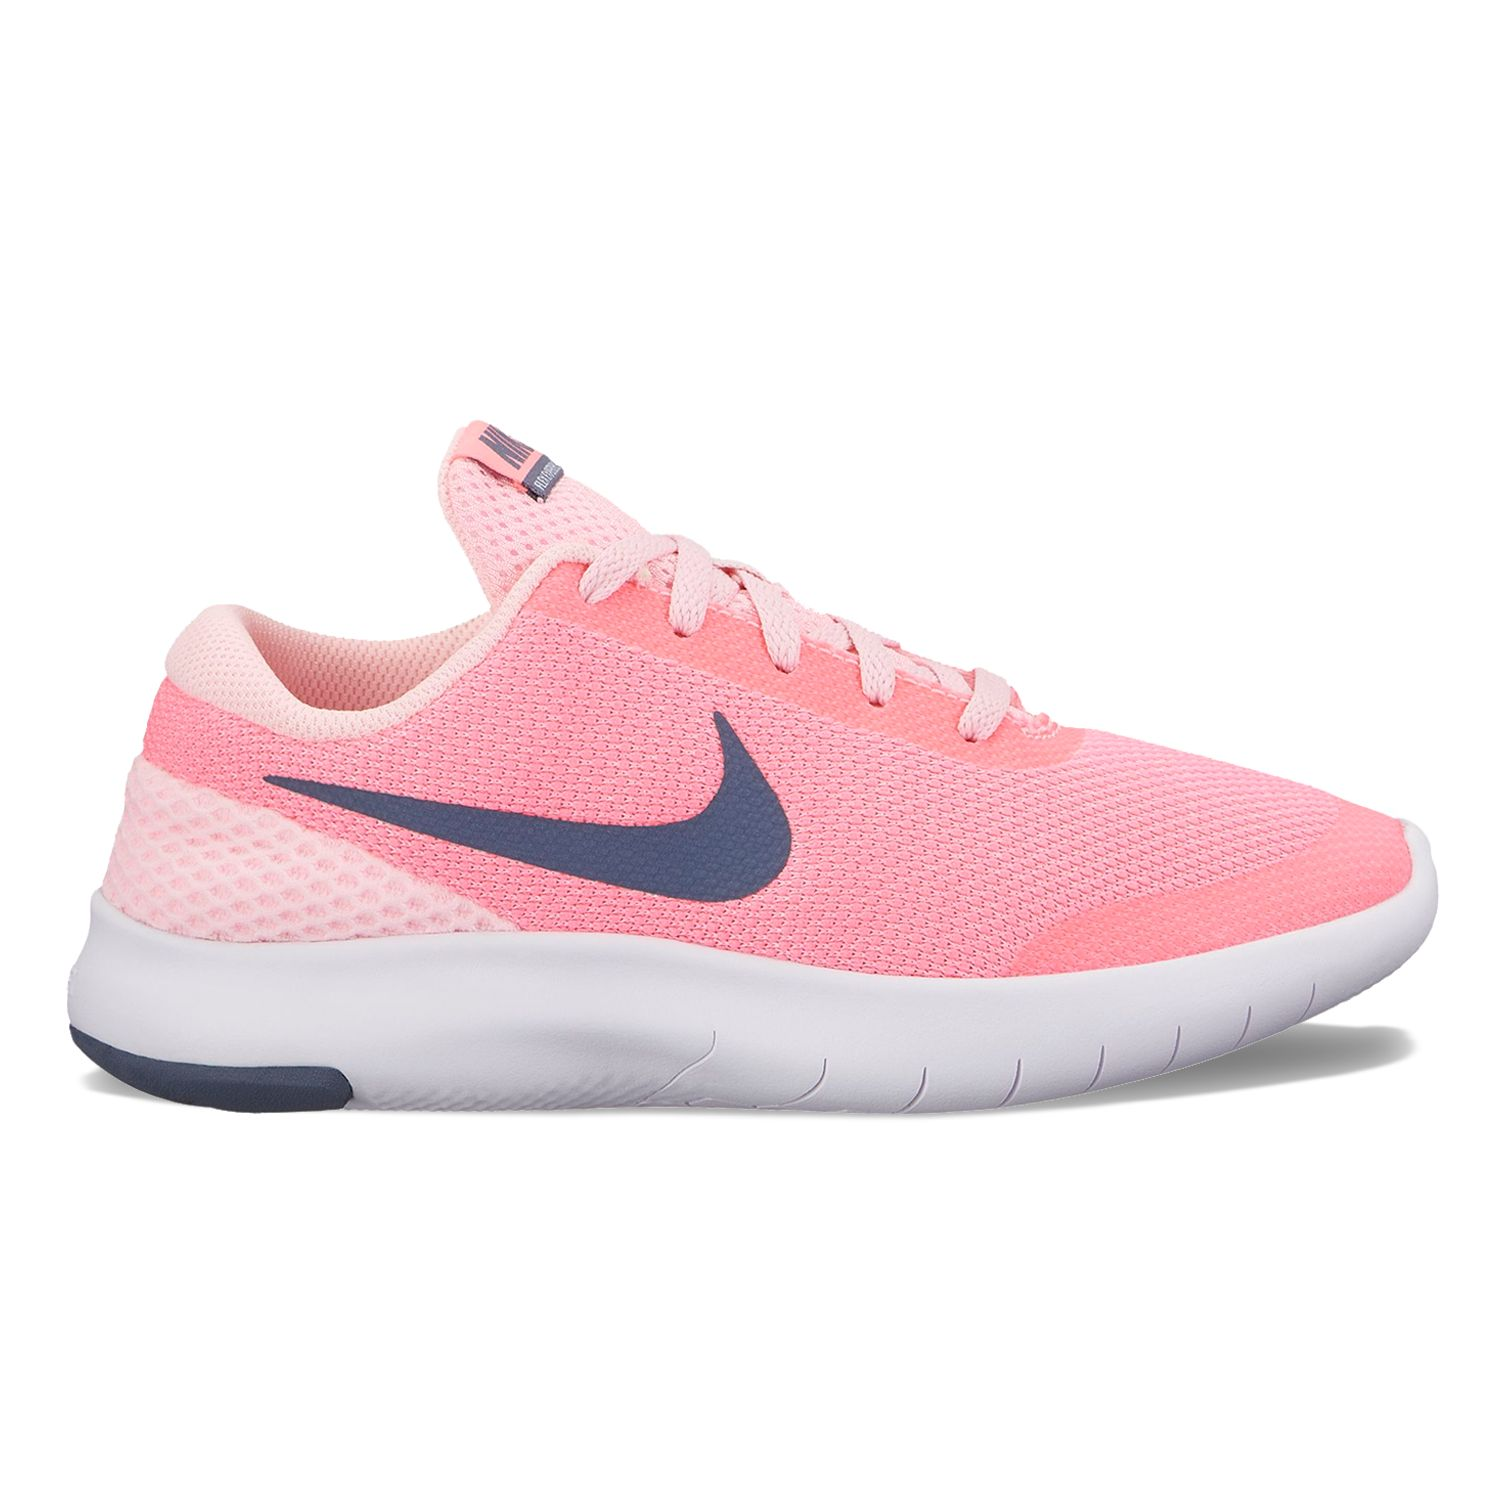 low priced bedbe 03821 ... promo code nike sneakers shoes girls air max 270 nike bc527 ca28e